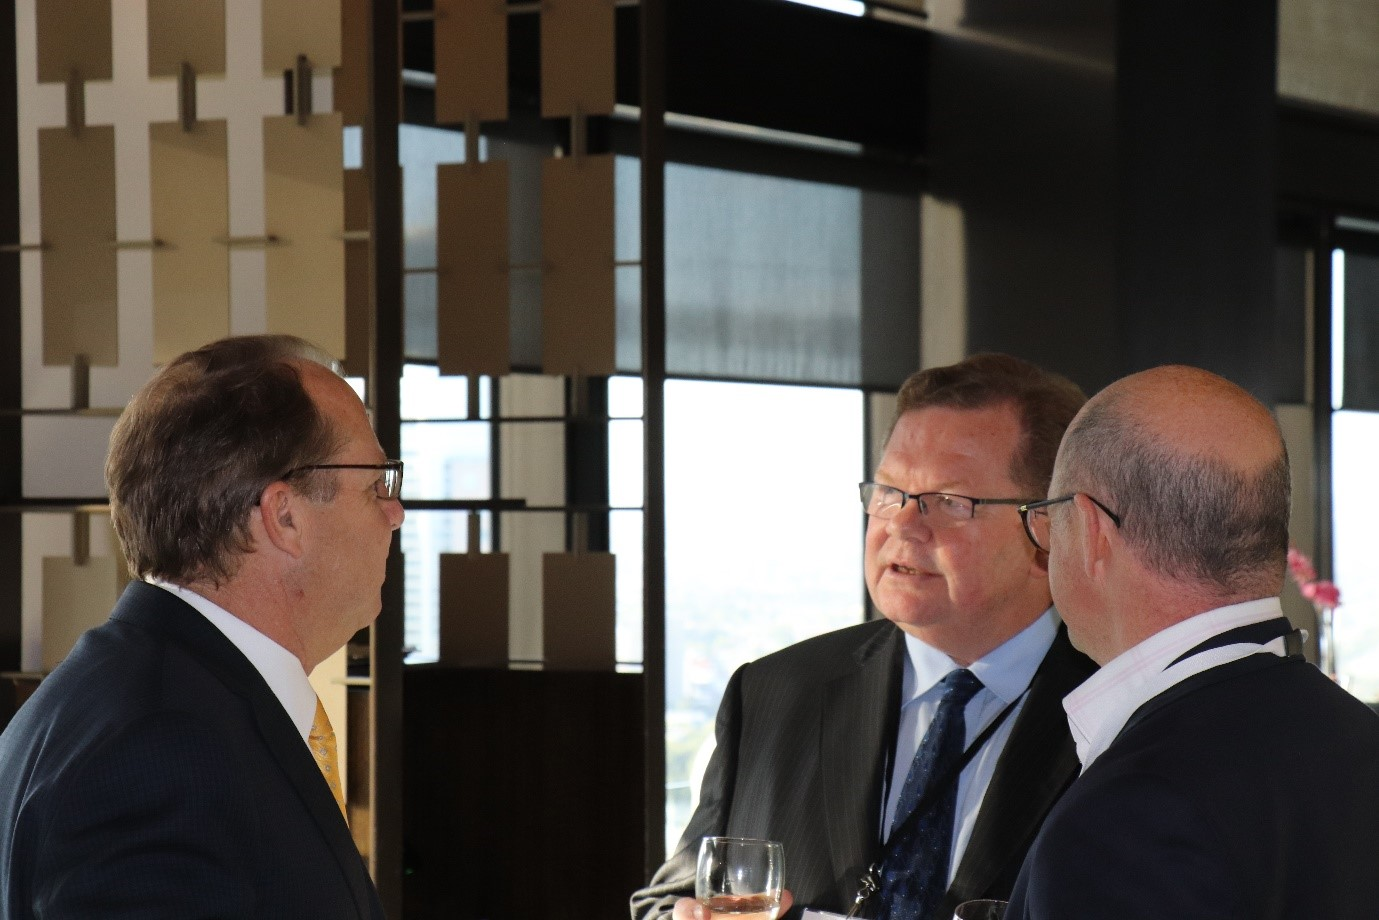 Welcome reception - image 5